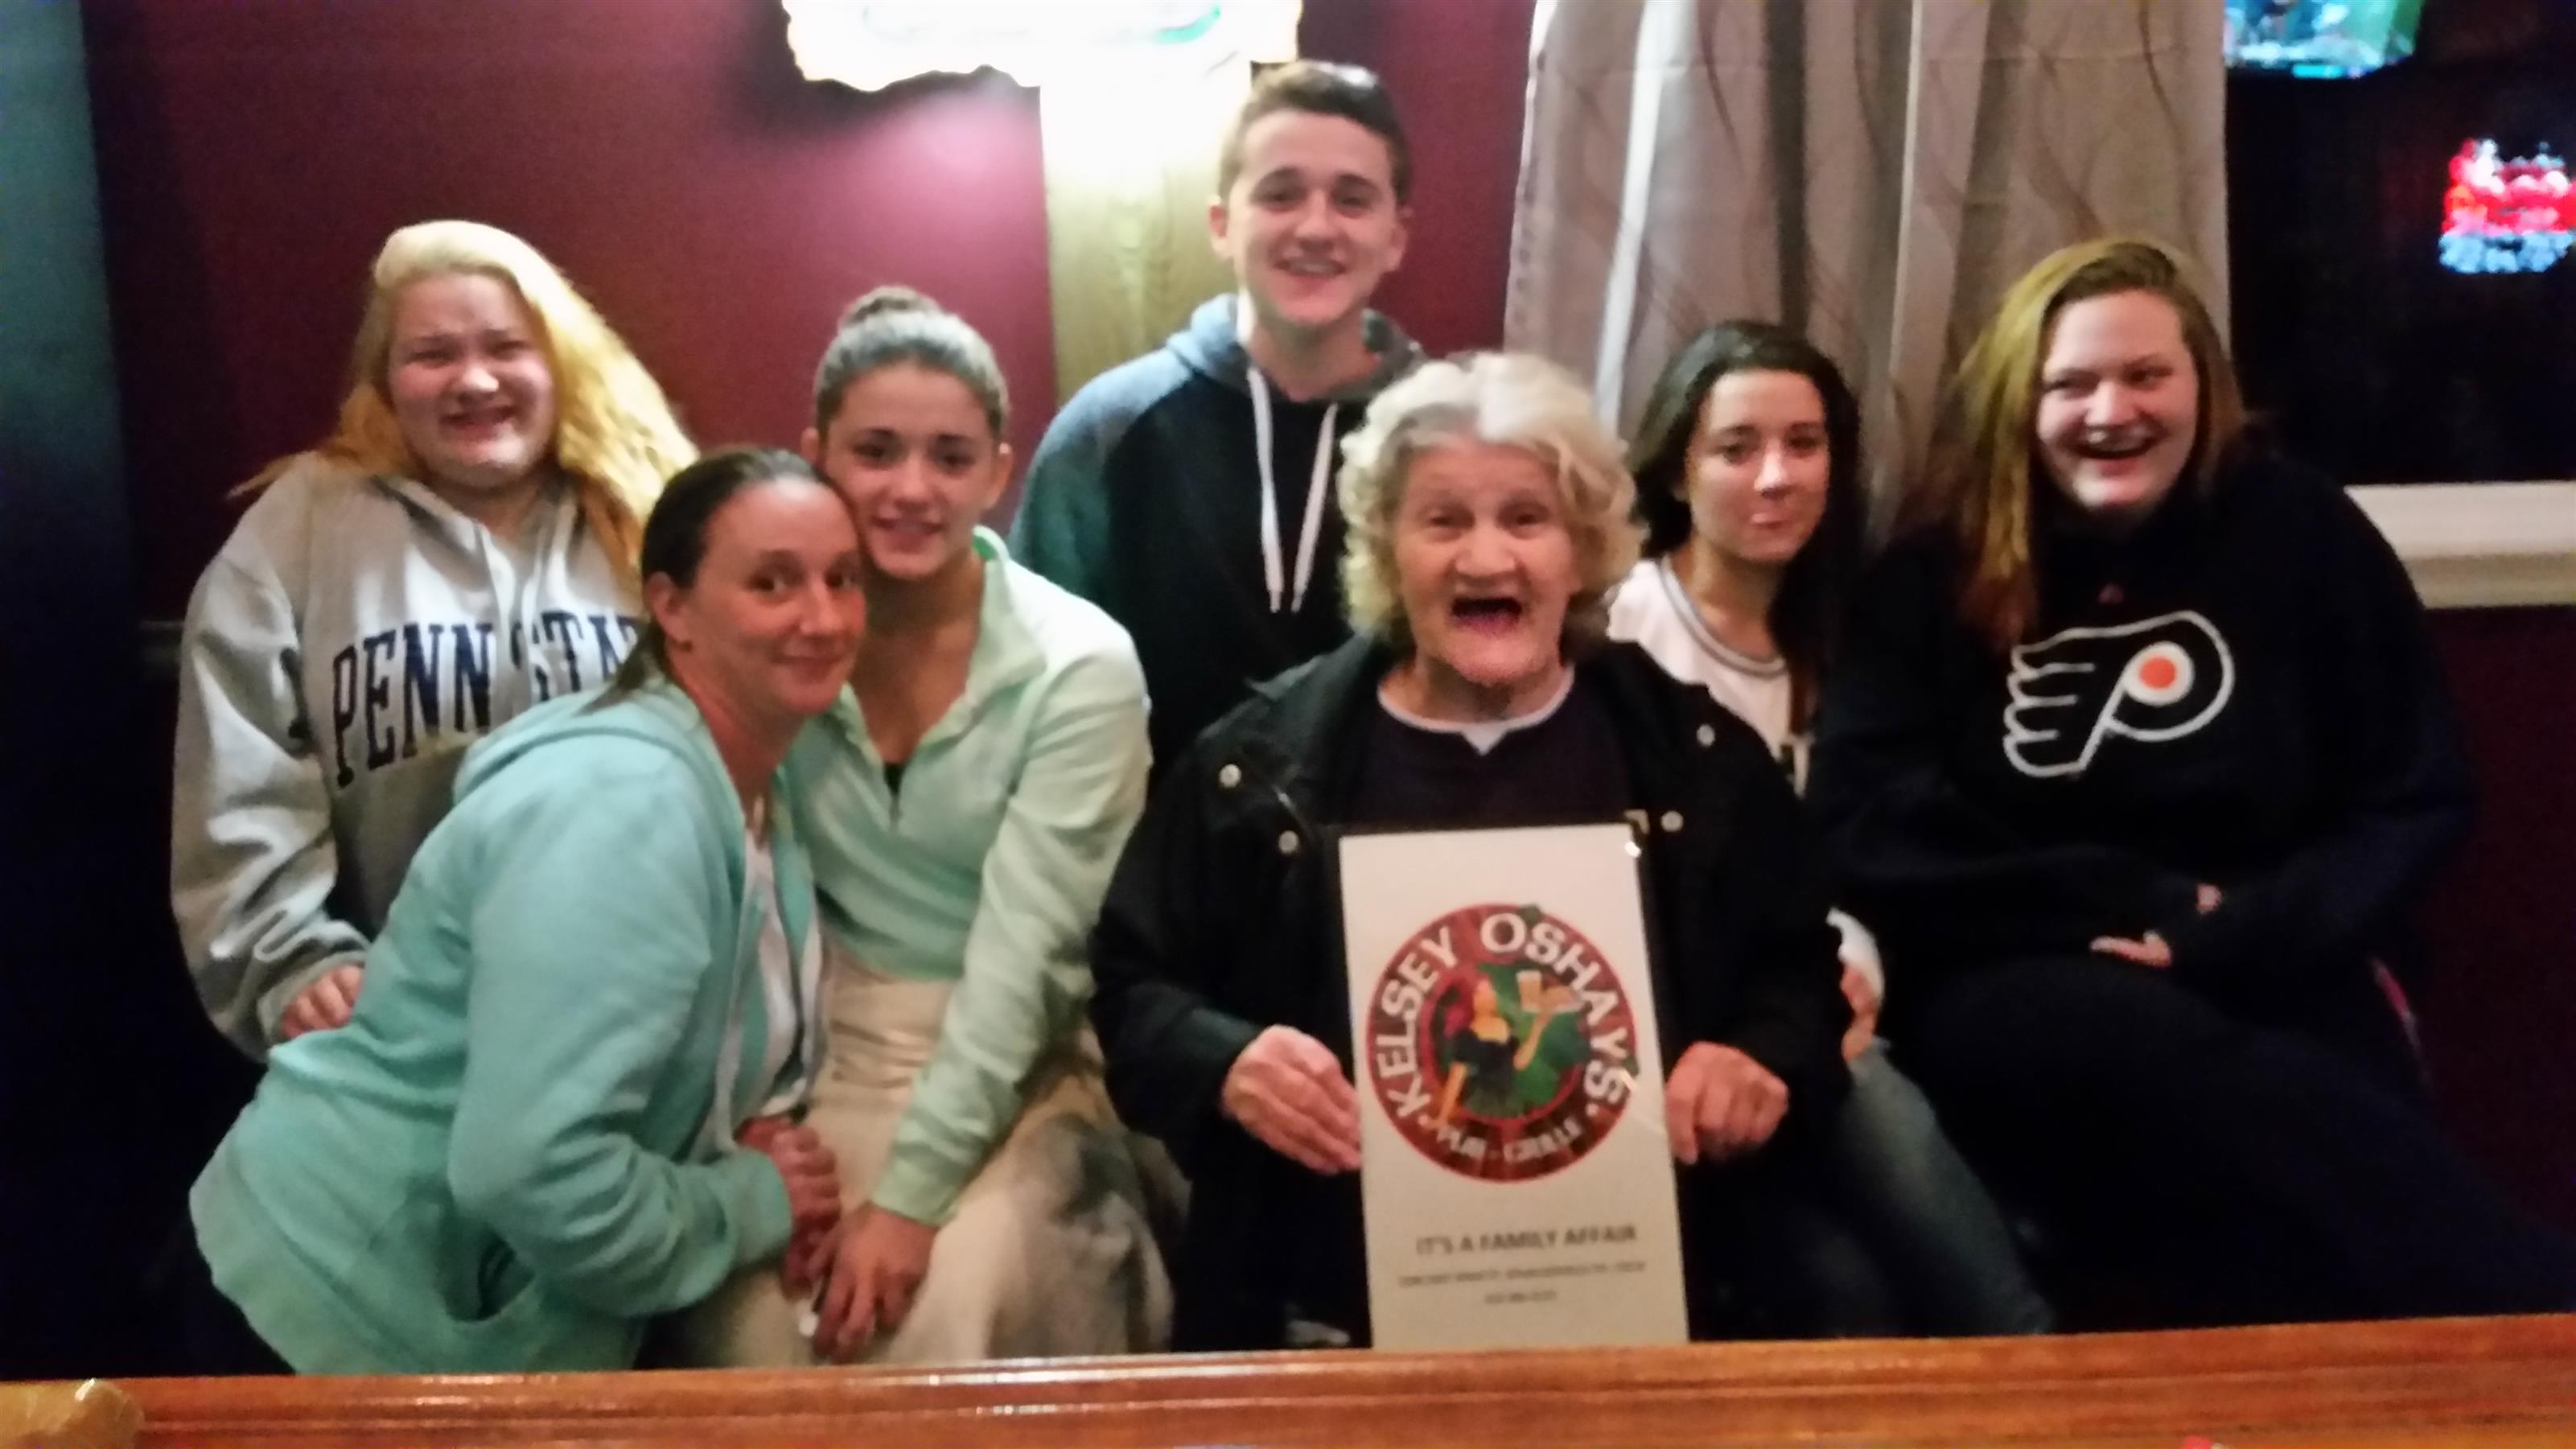 Smiling young people beside a happy winner of the Pub's Challenge